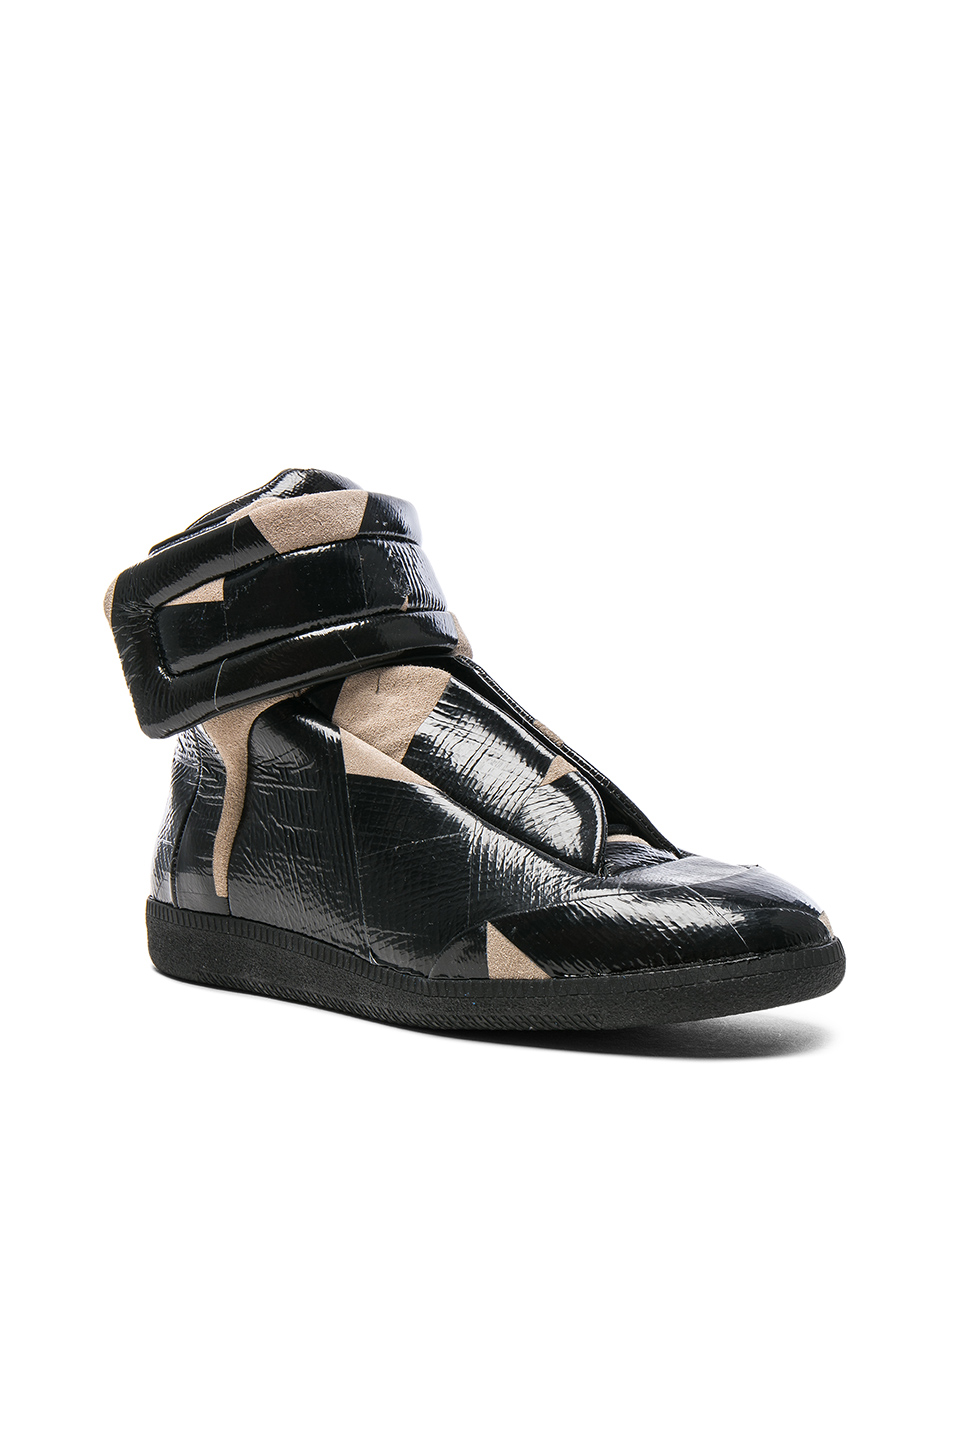 Maison Margiela Future High Top Sneakers in Black,Abstract